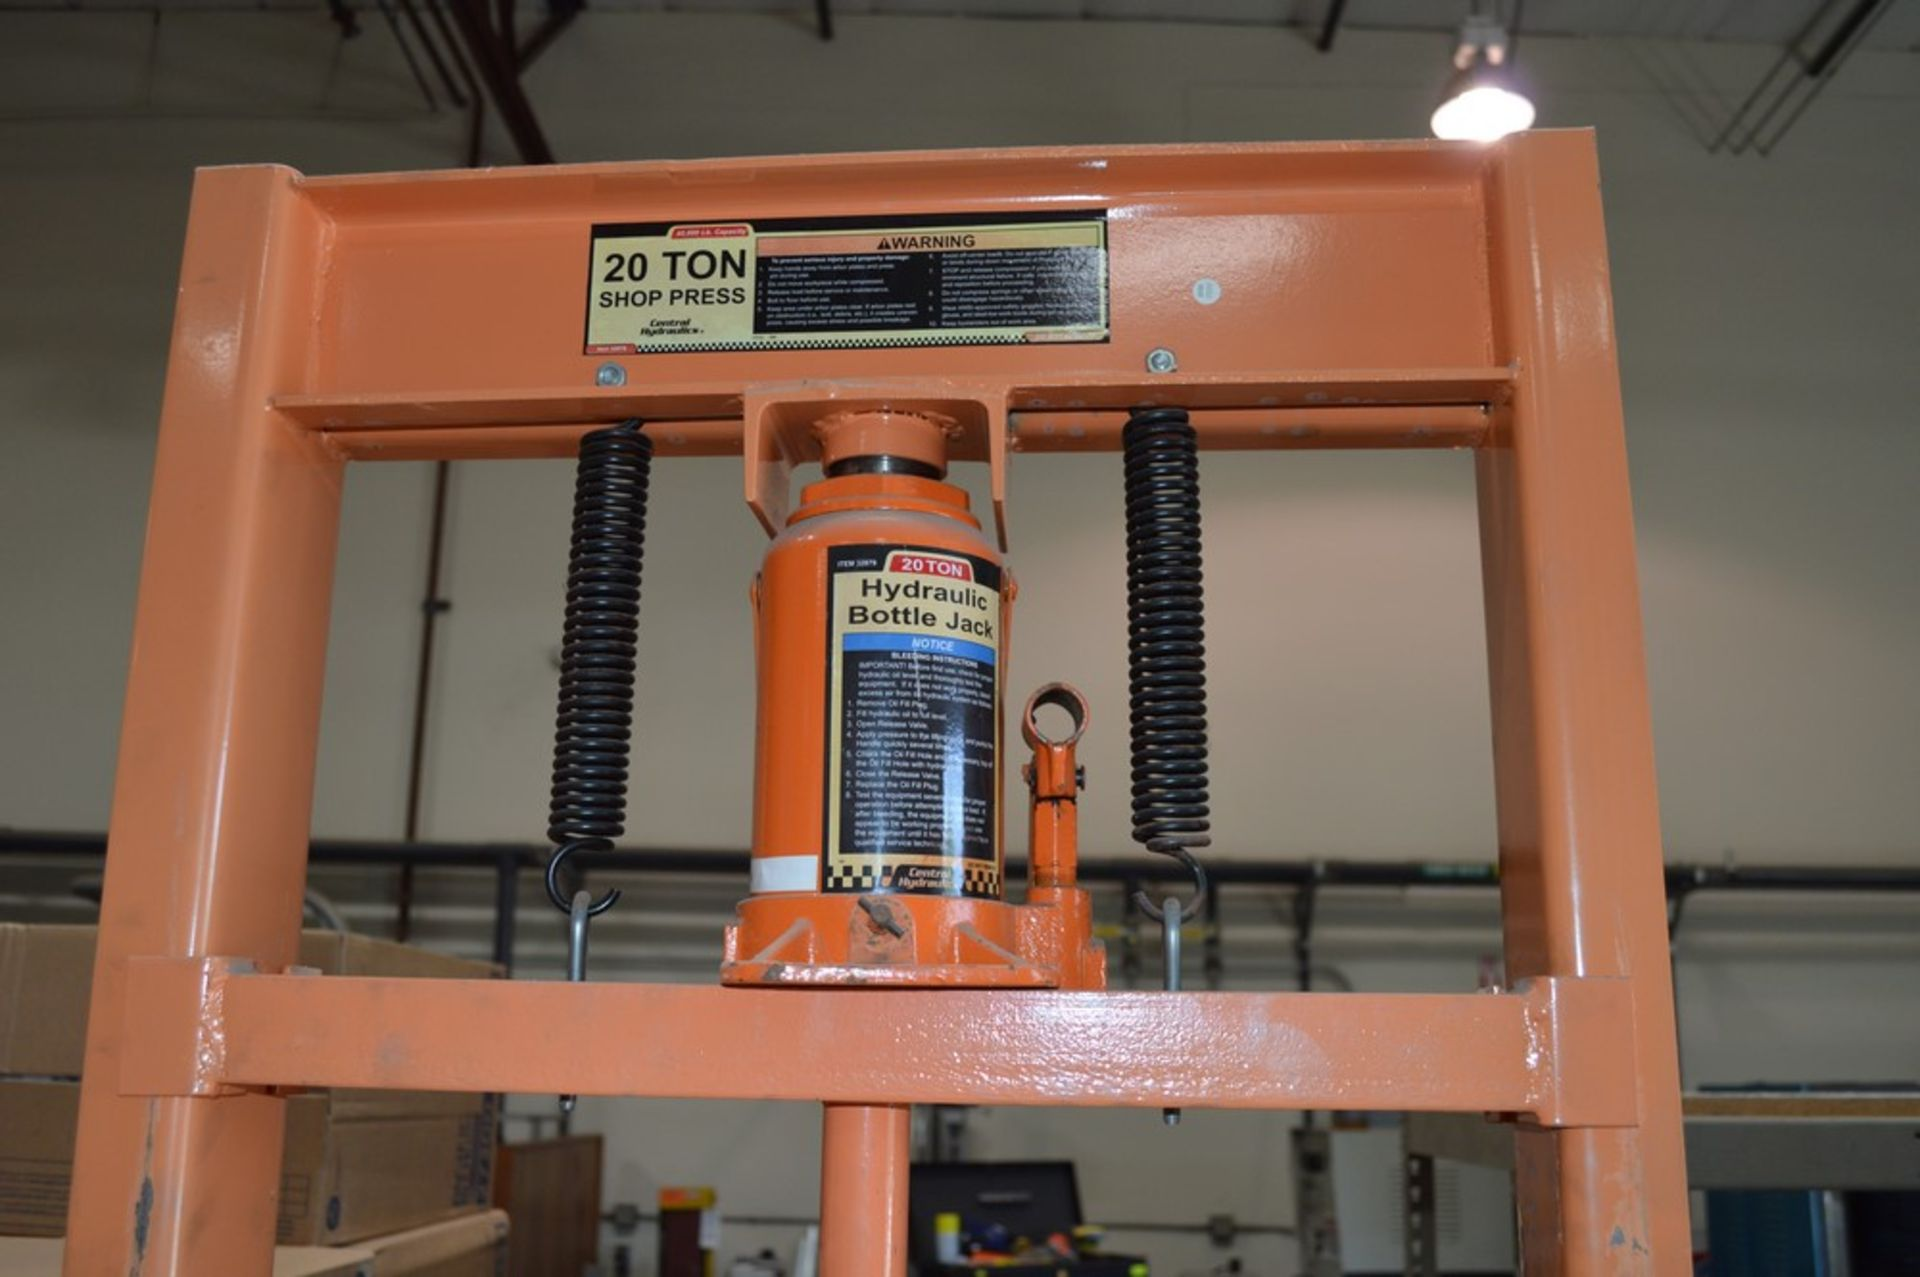 Central Hydraulics 20 Ton shop press, small steel table - Image 4 of 4